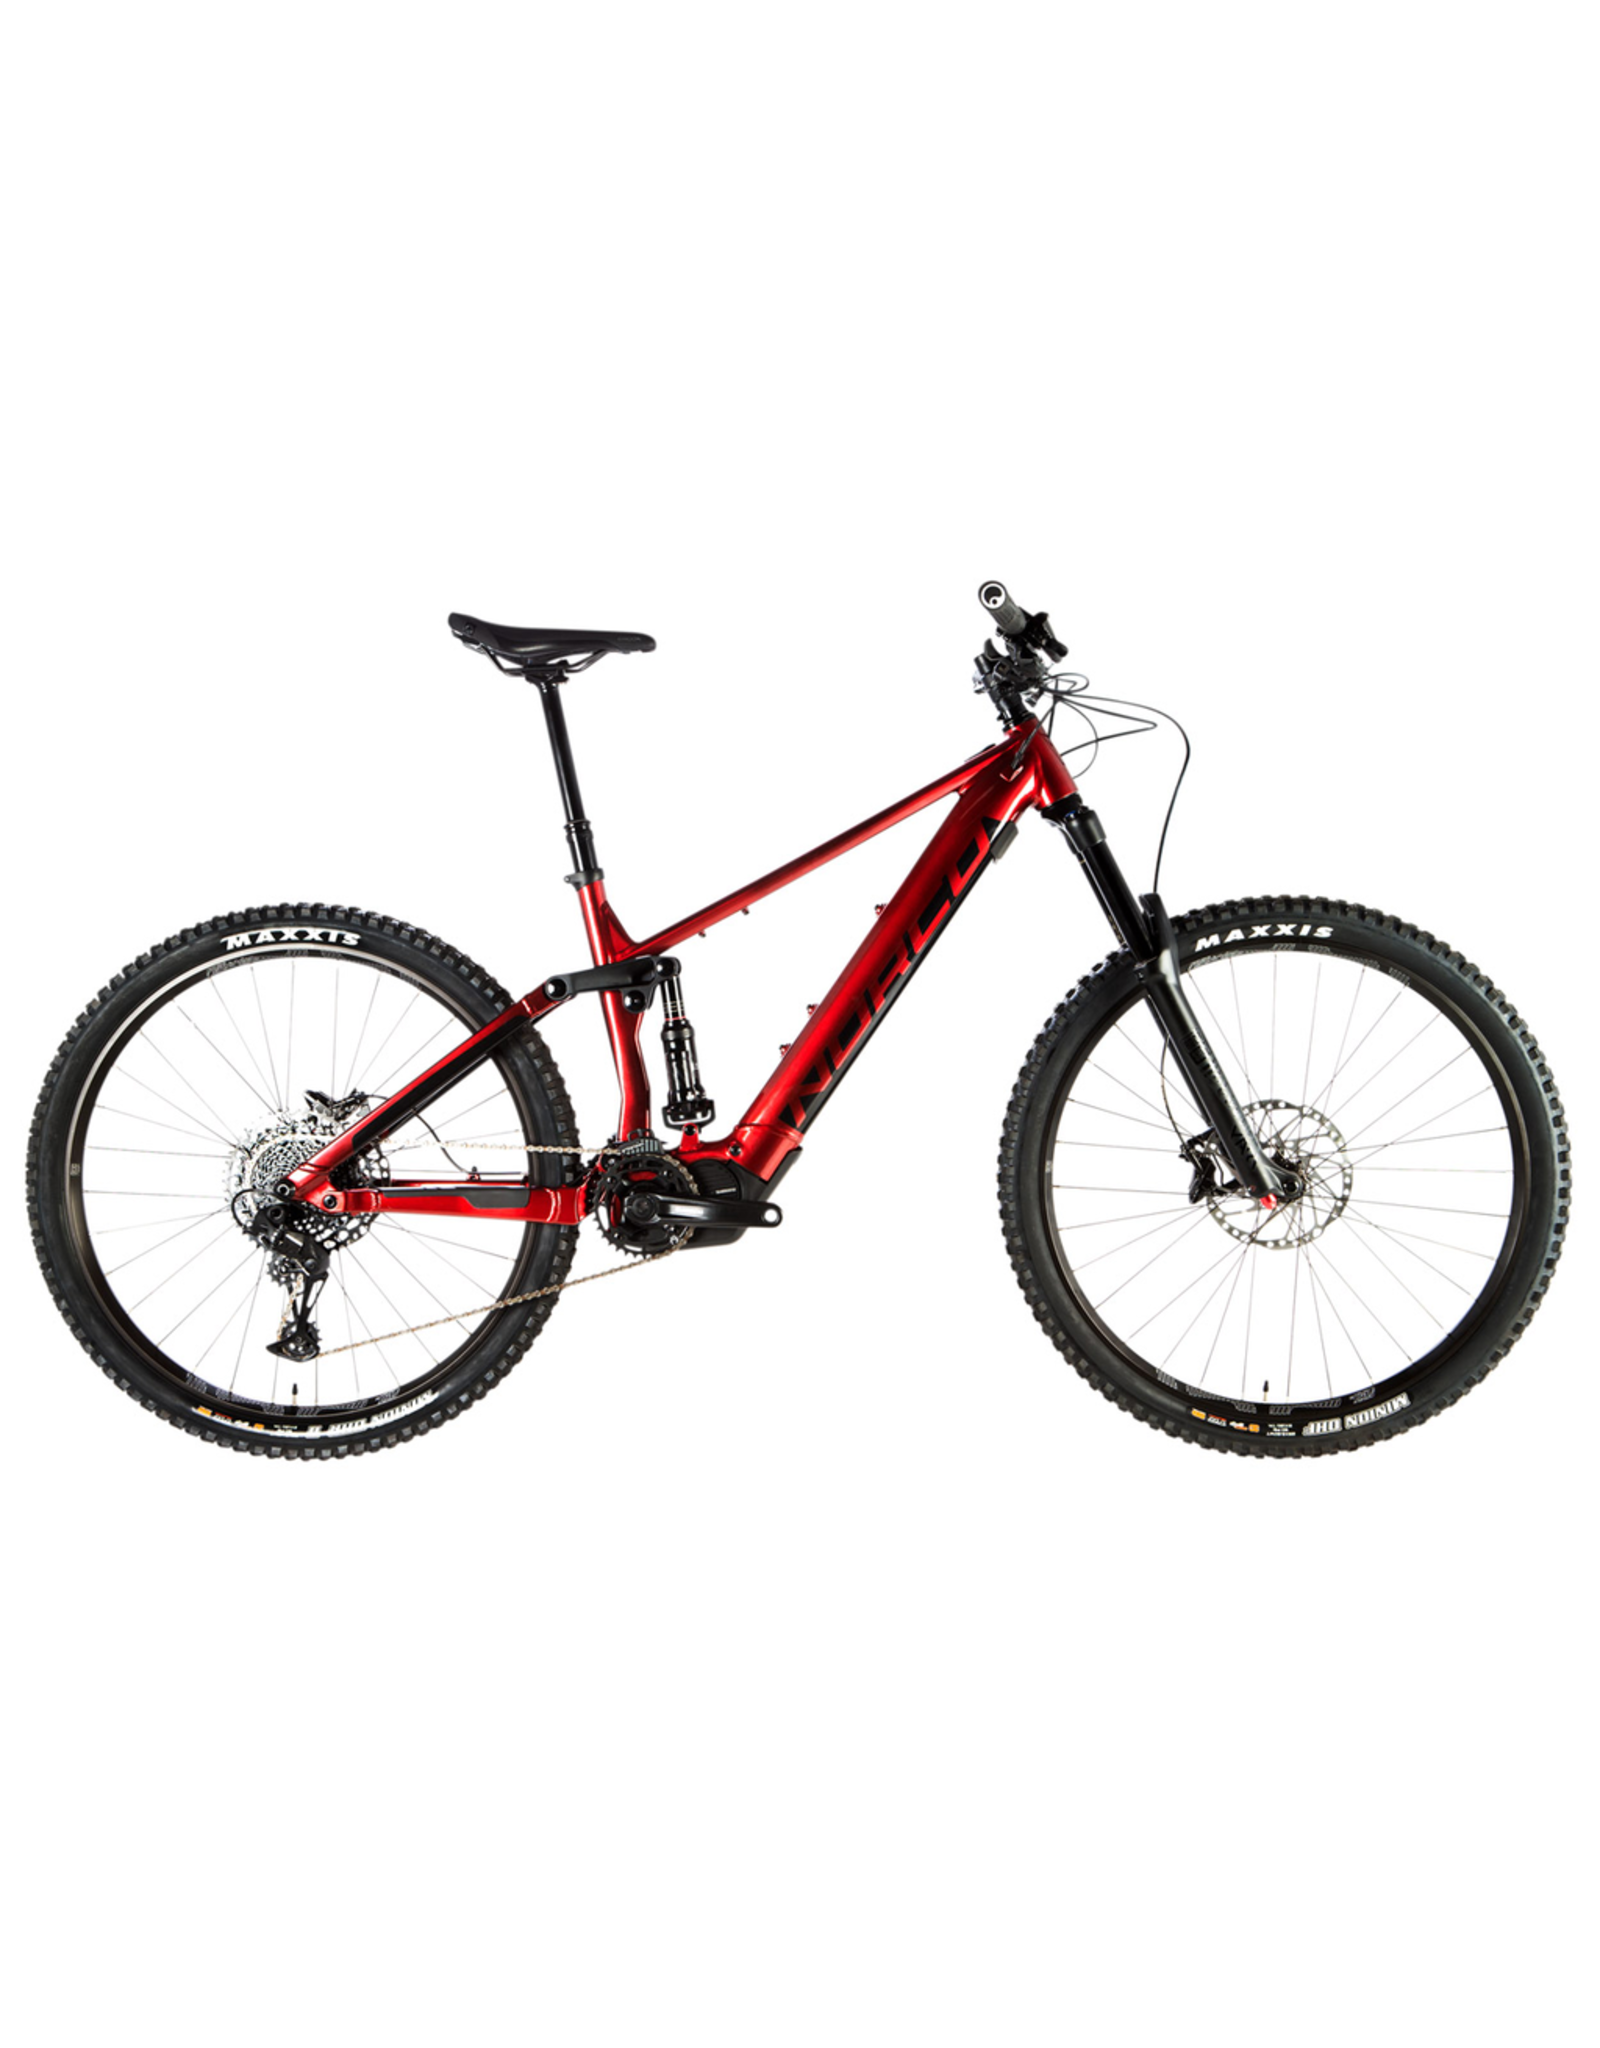 NORCO NORCO VLT SIGHT A1 (29) BLOOD RED/BLACK (E-BIKE)